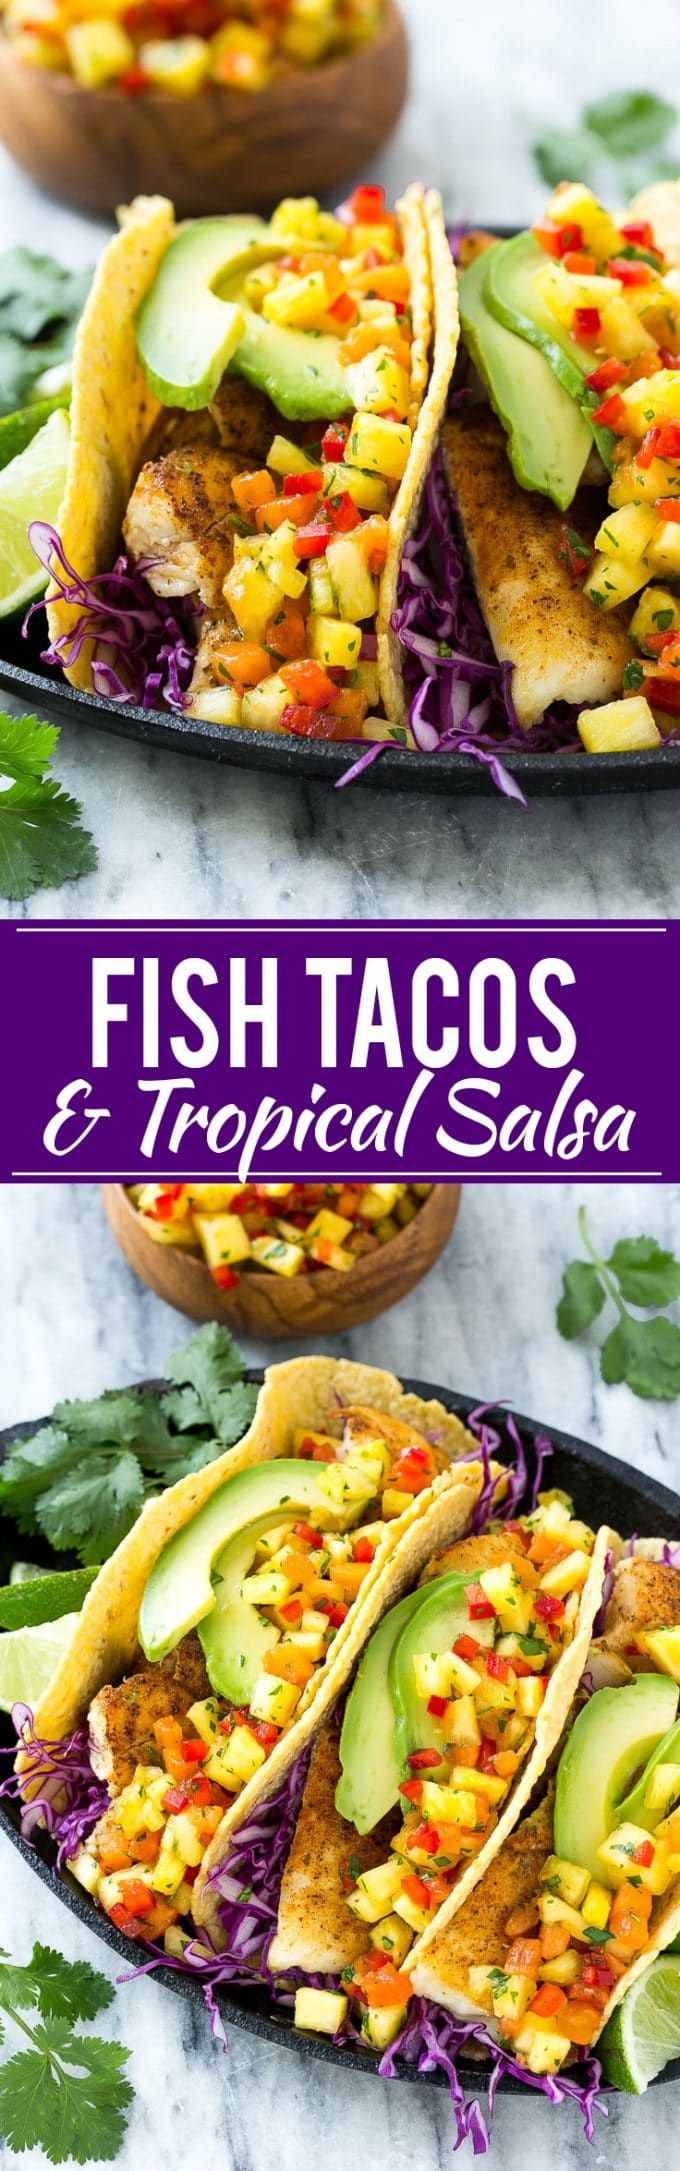 100 grilled tilapia recipes on pinterest healthy for Tilapia fish taco recipes